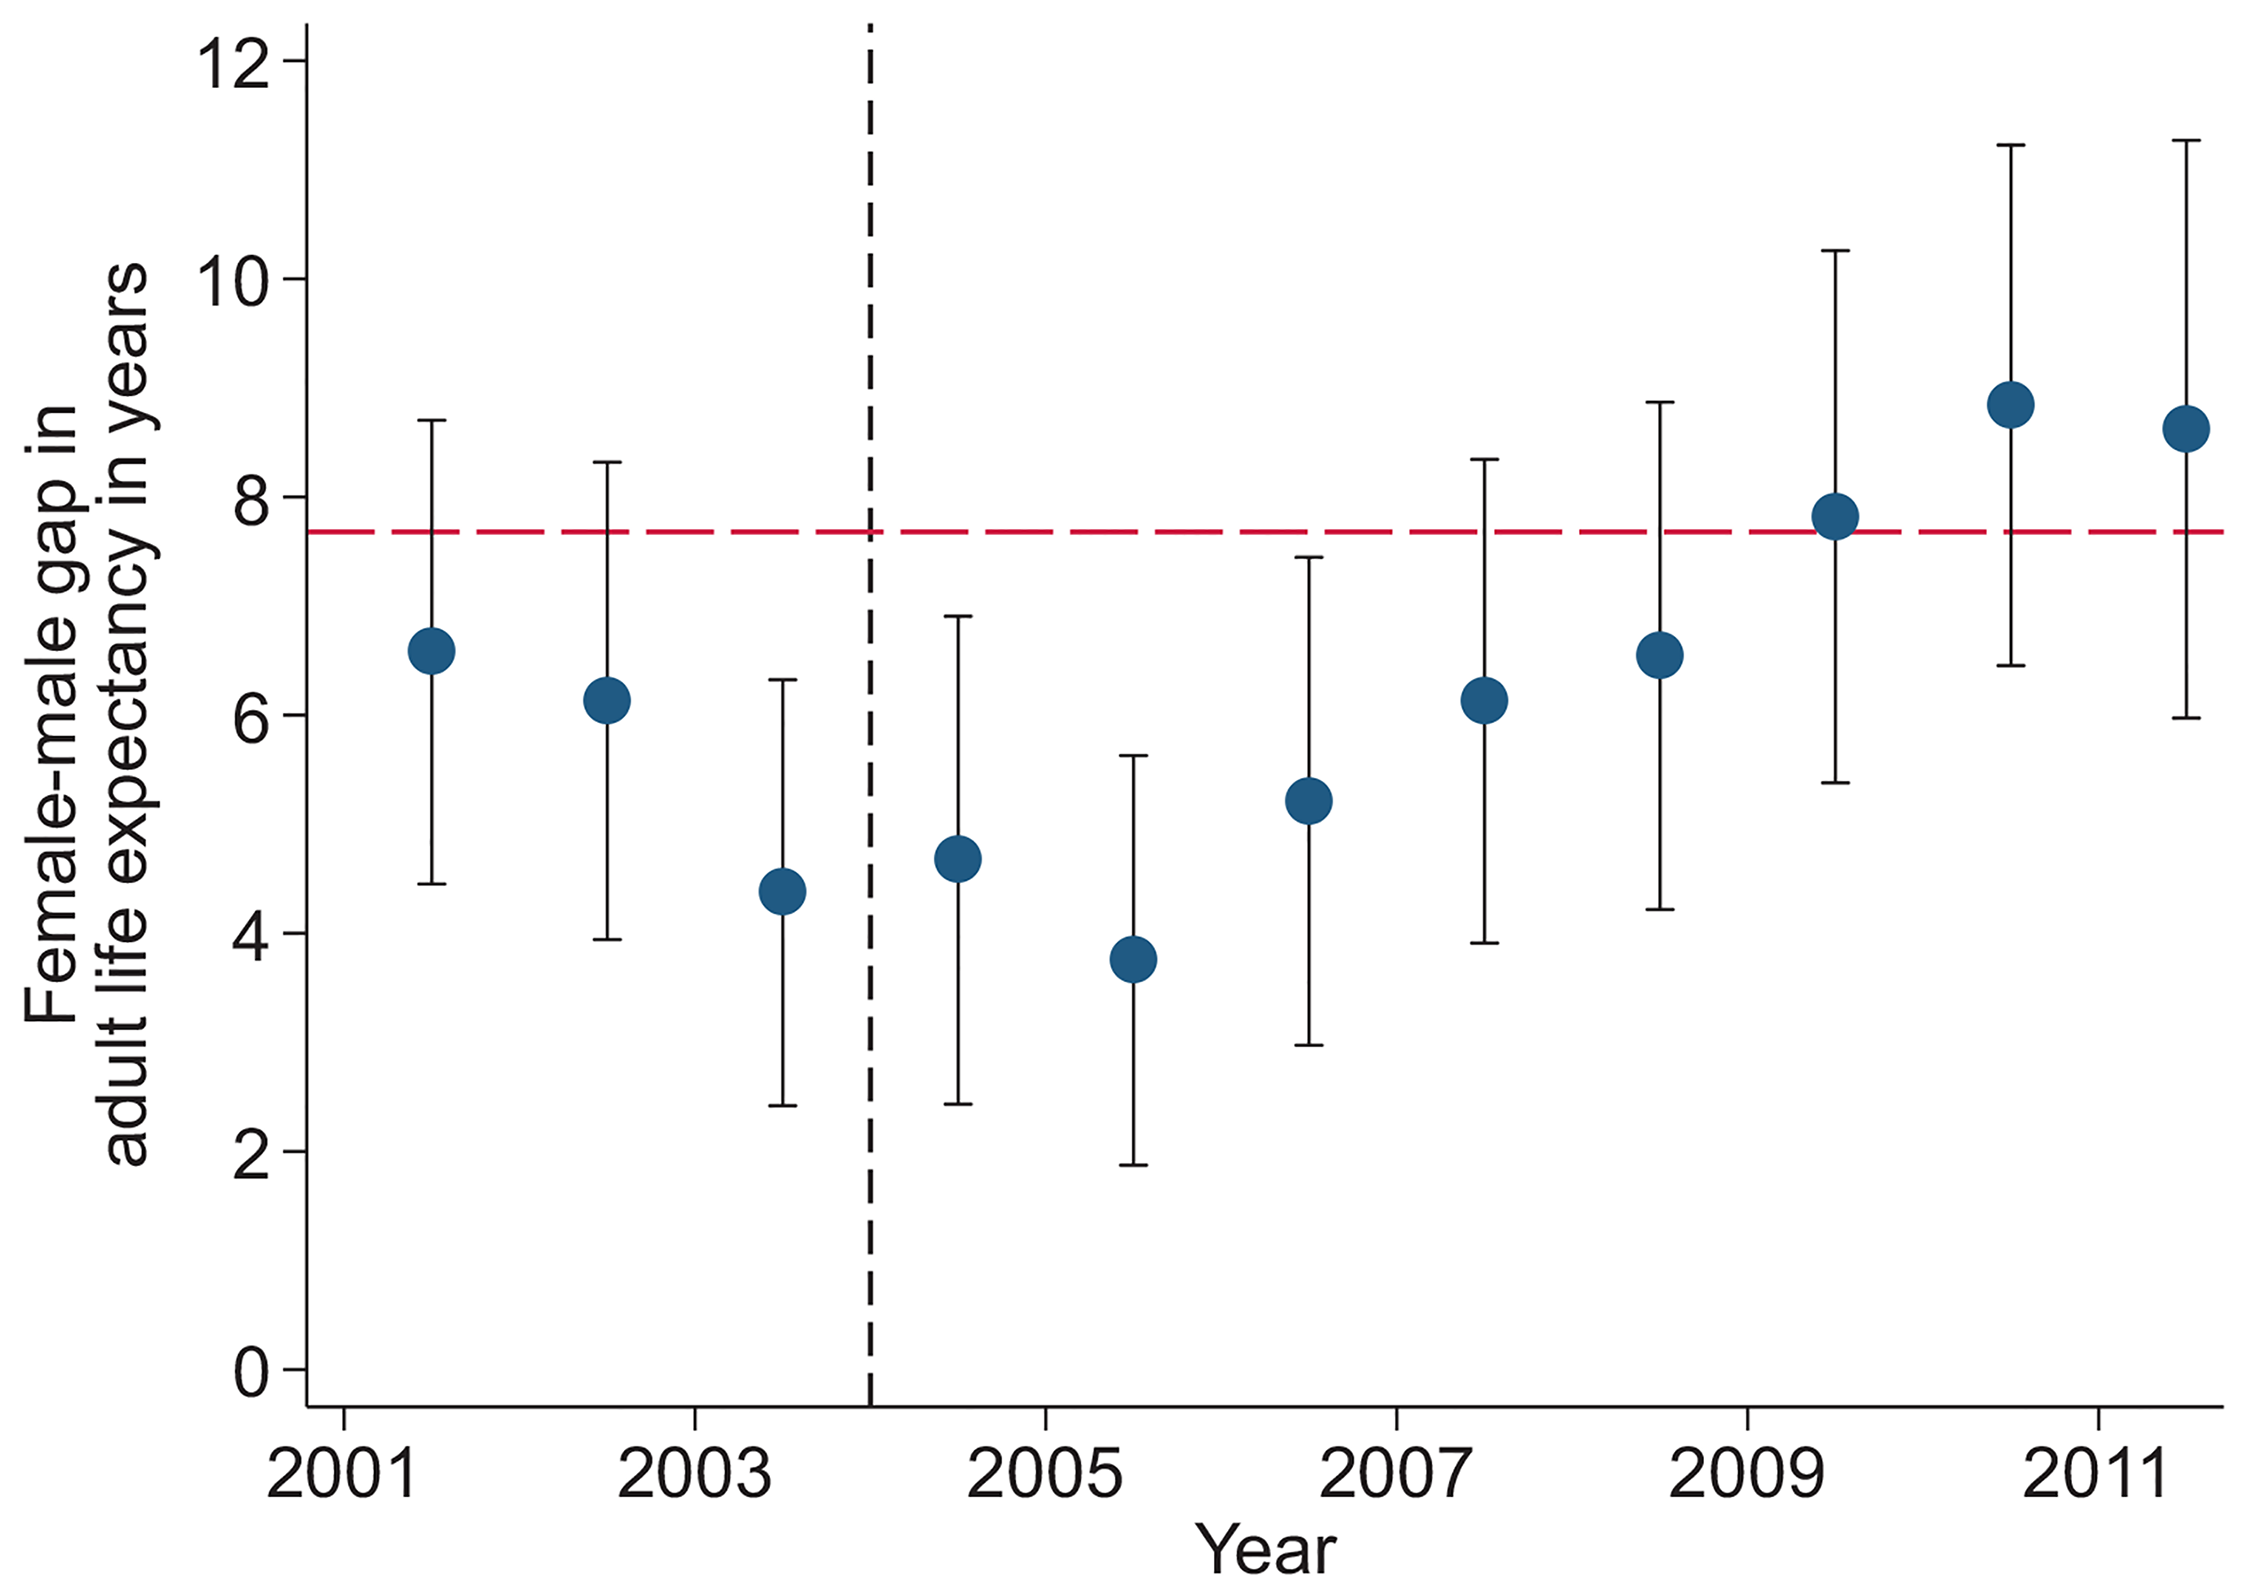 Female–male difference in adult life expectancy, 2001–2011.